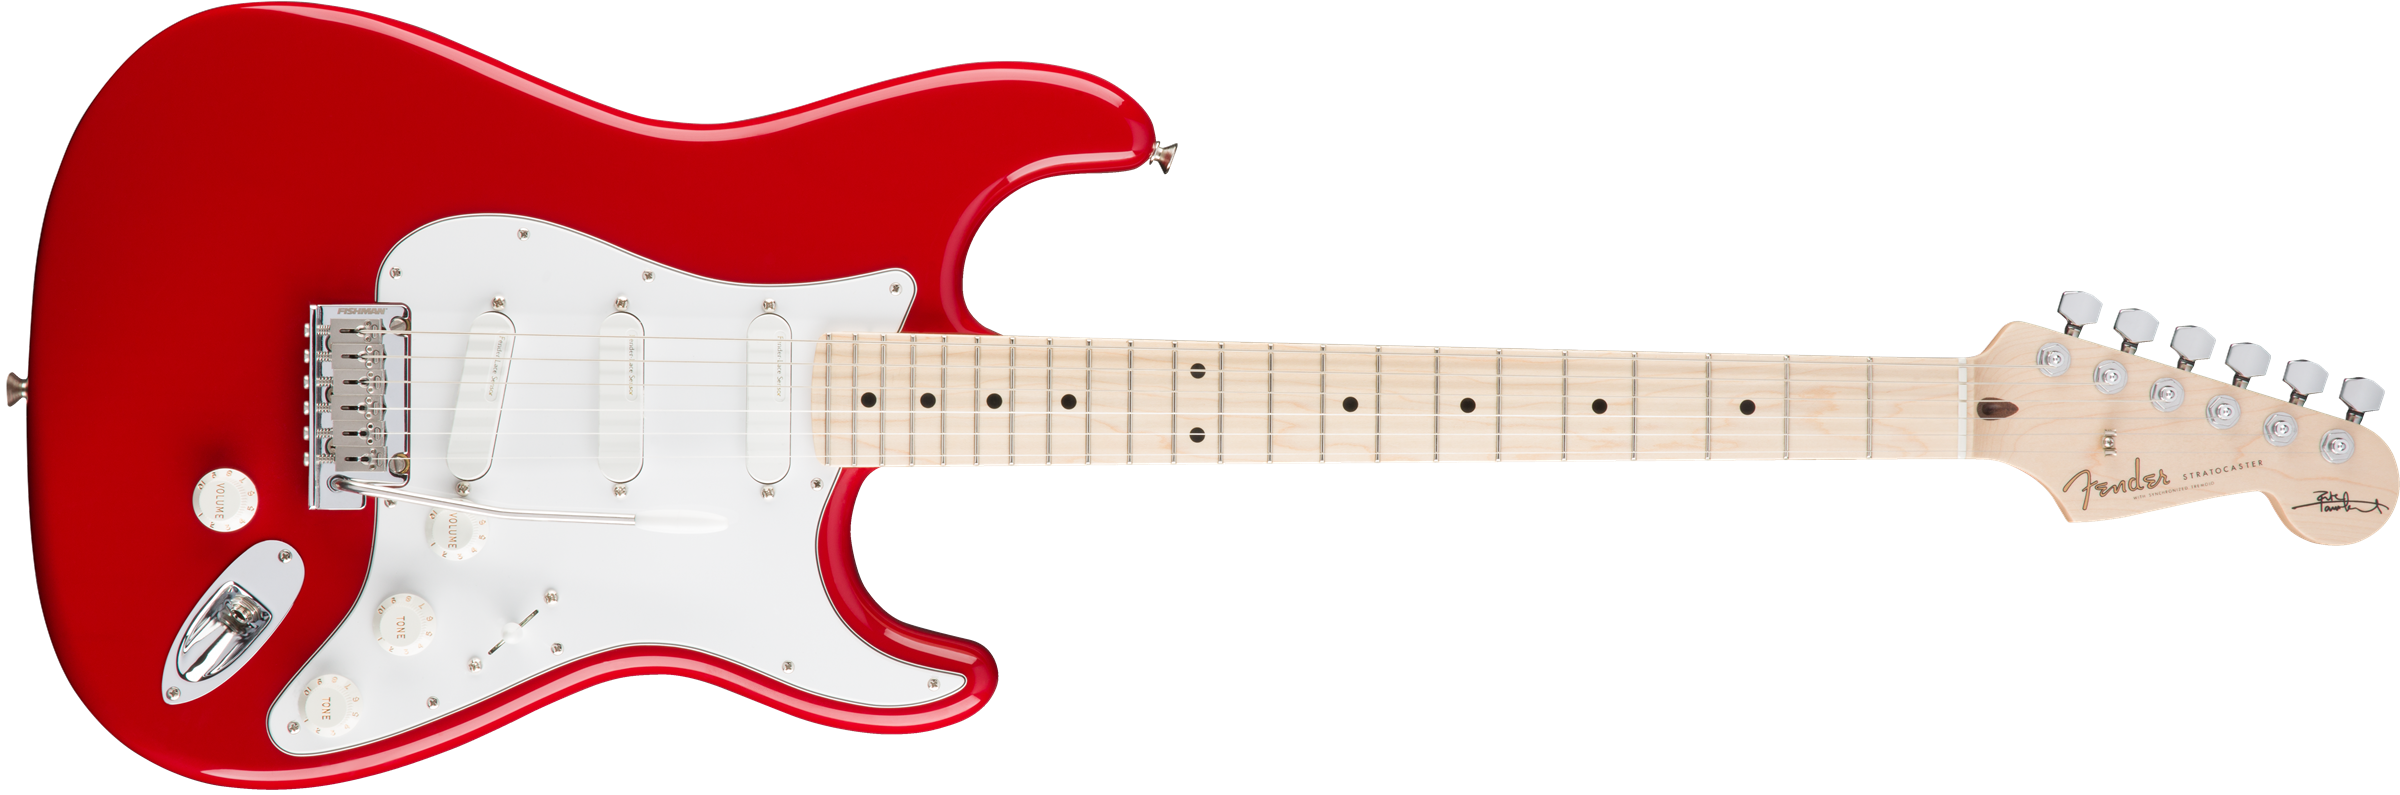 Clipart guitar 50's. Limited edition pete townshend